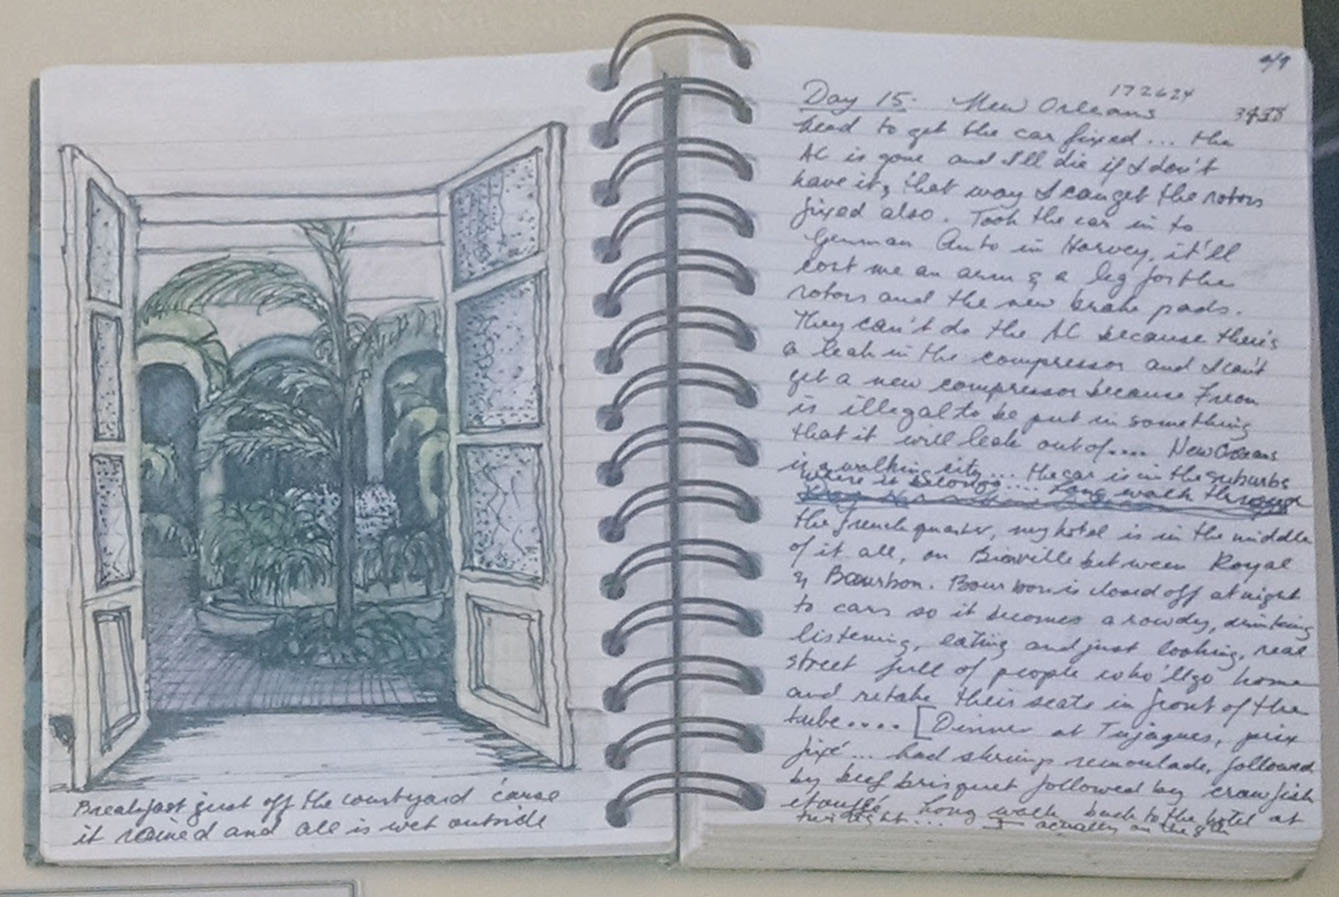 Photograph from top down of open journal. On left is an ink sketch of a garden through two doors. On the right is a handwritten diary entry.